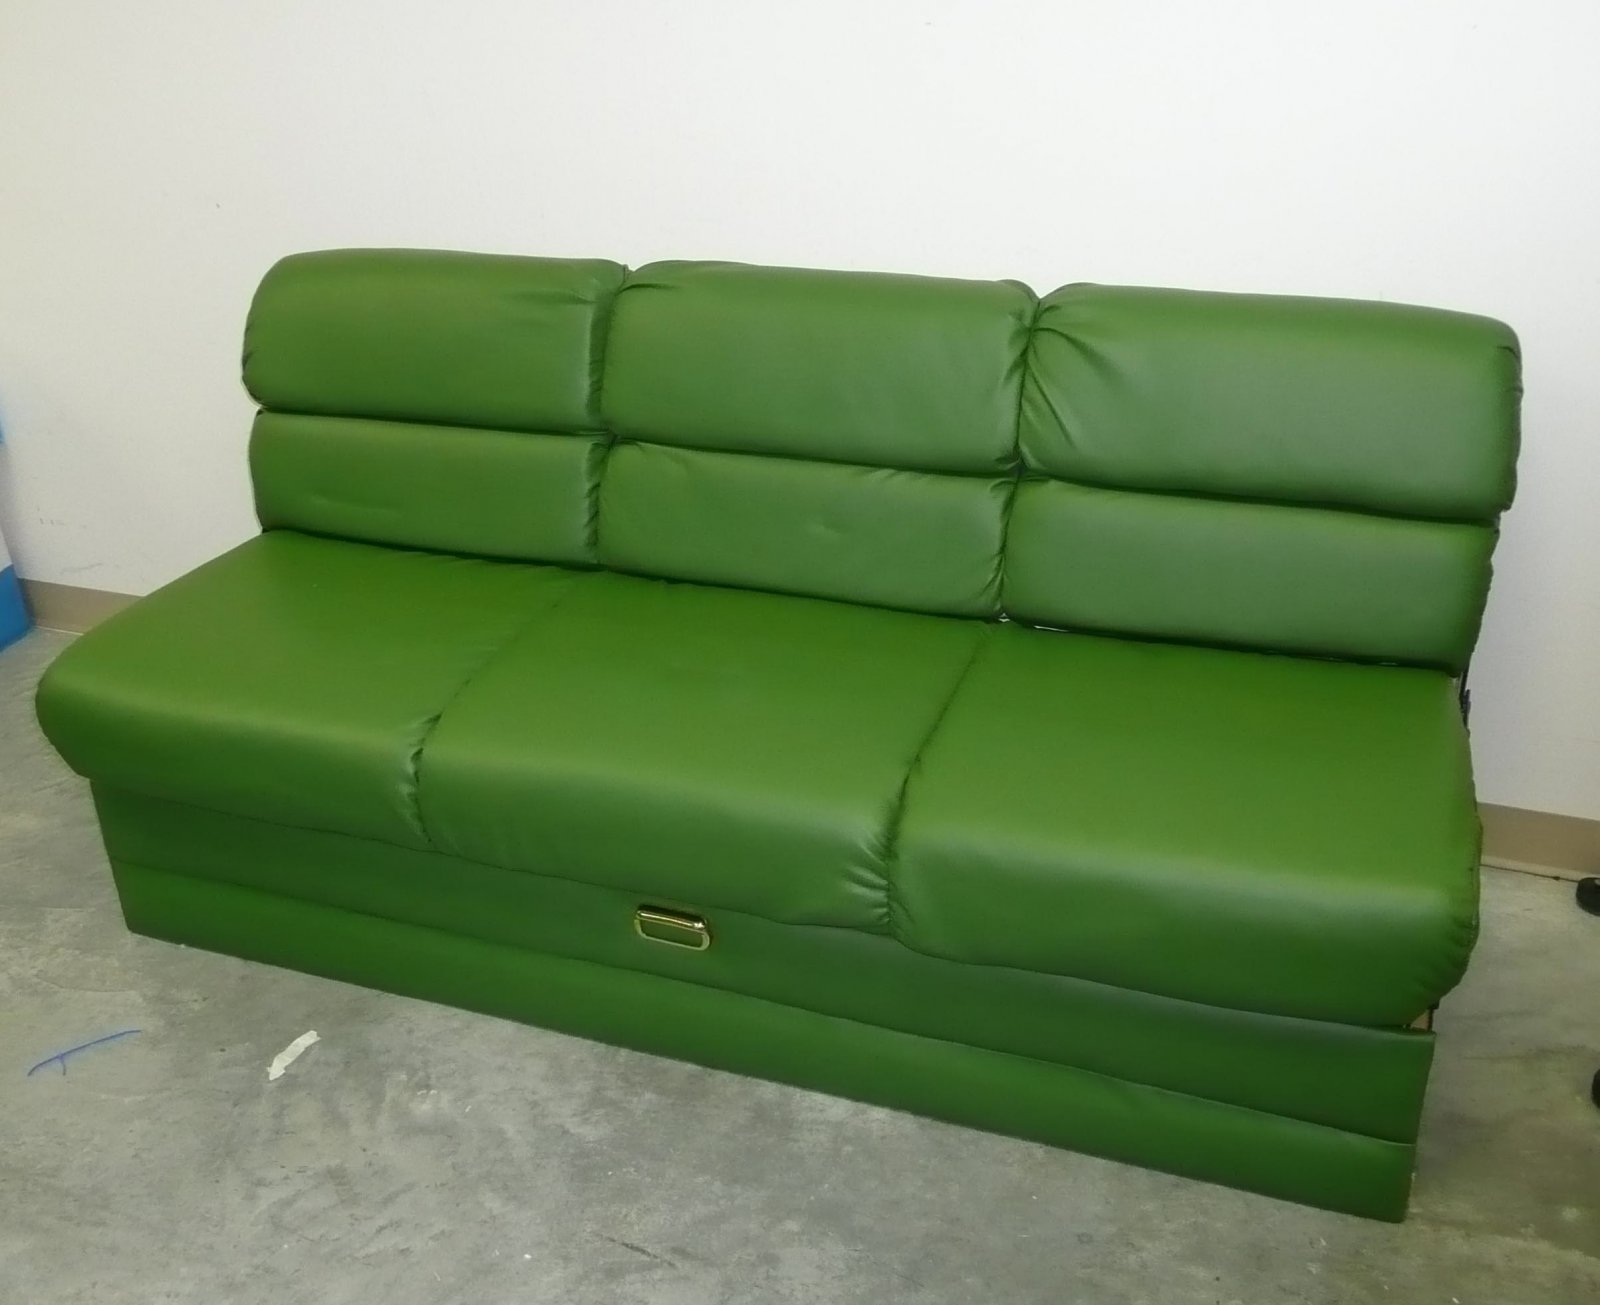 Click image for larger version  Name:Couch 3.jpg Views:113 Size:145.8 KB ID:119266